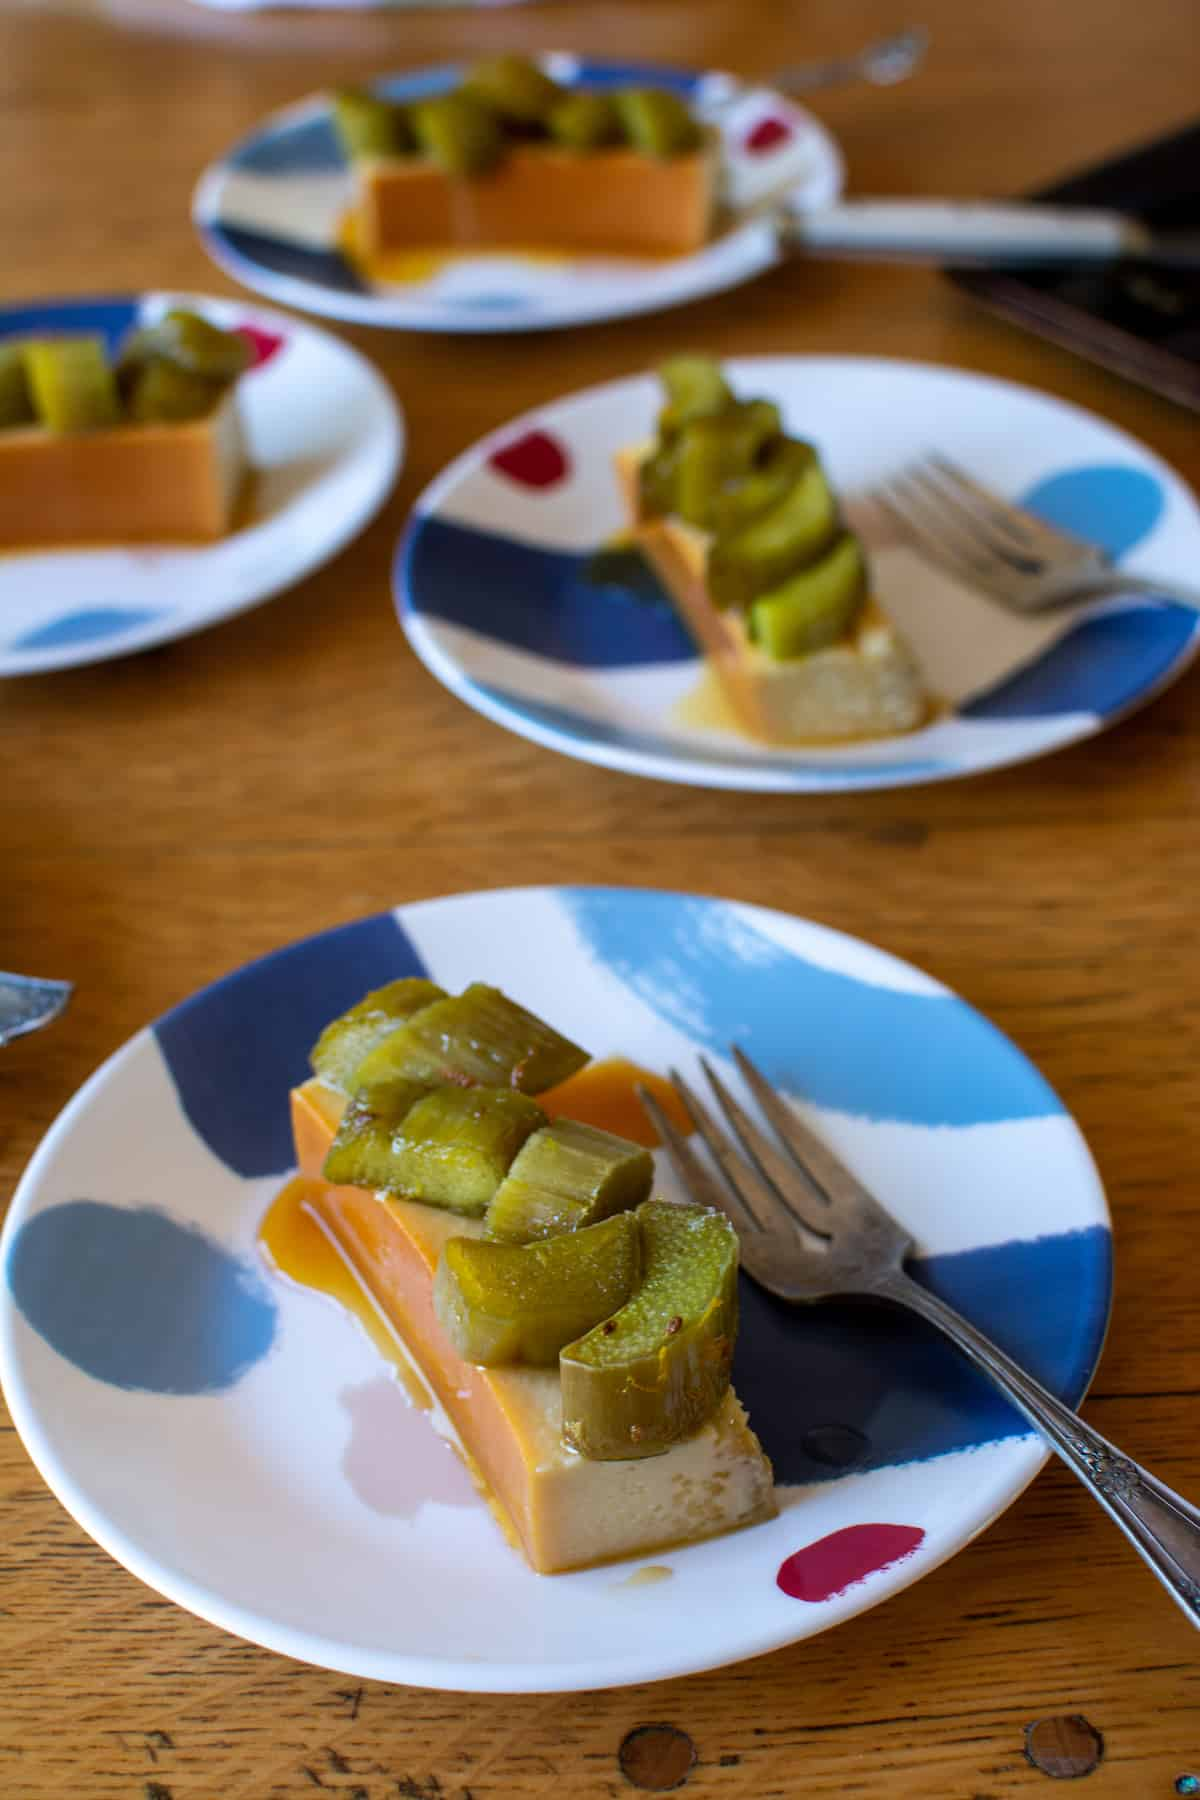 Pieces of flan with green pieces of rhubarb on top sitting on blue and white dessert plates with forks on the plates.